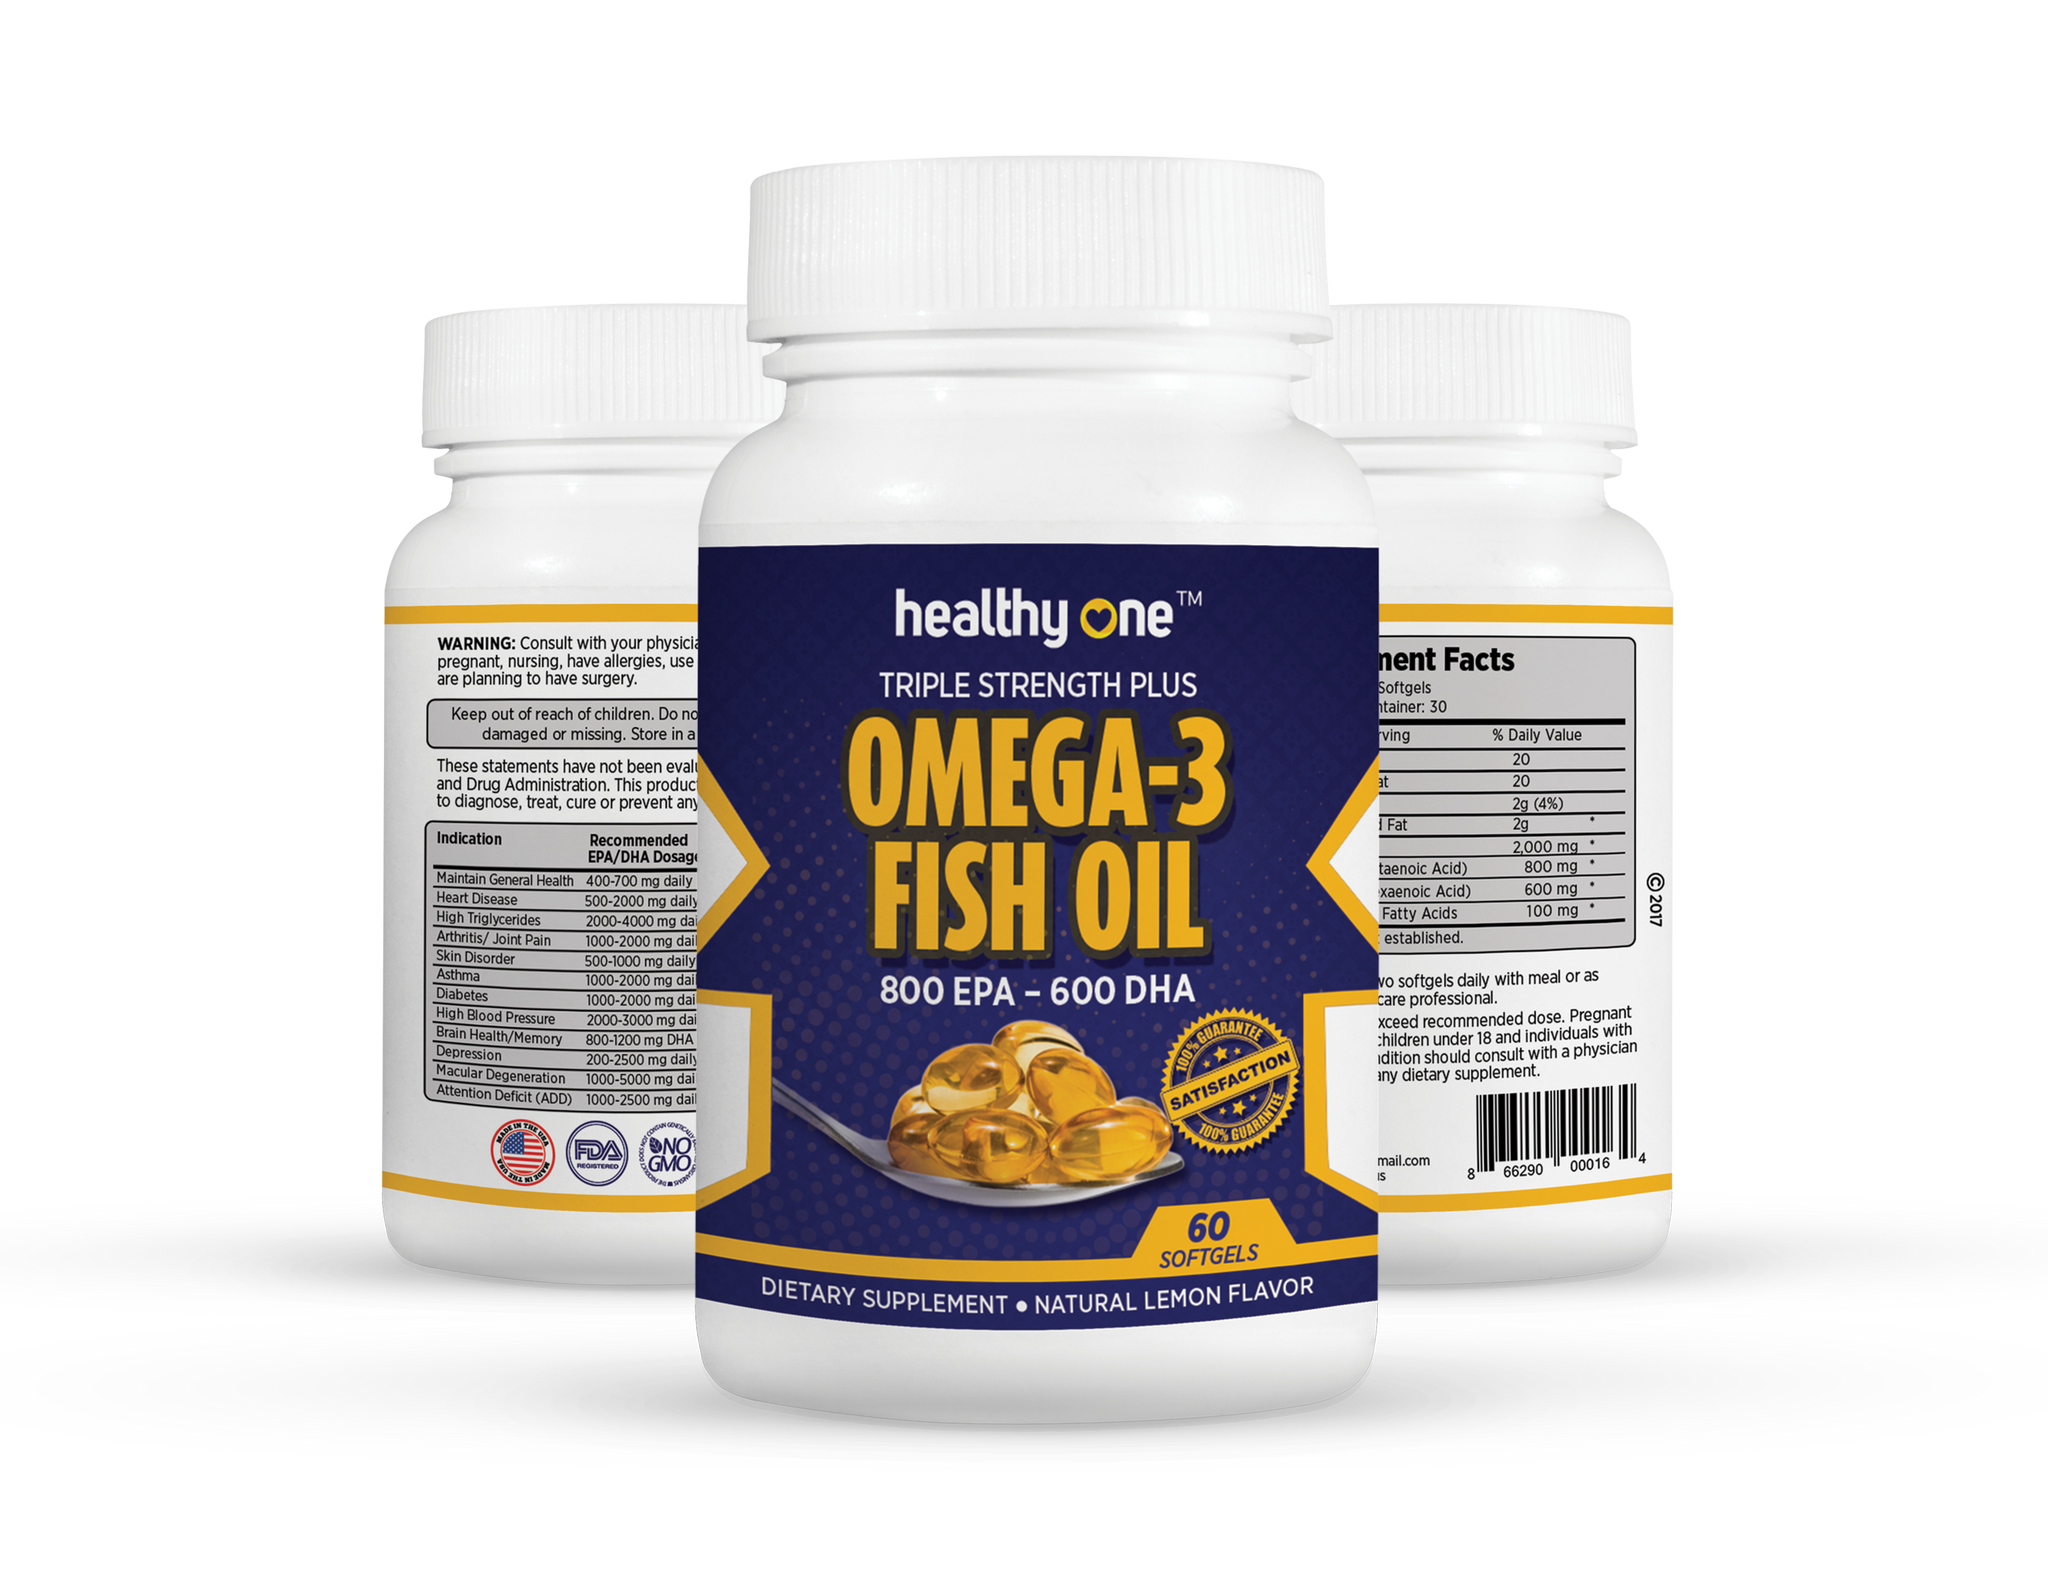 Omega 3 Fish Oil 800 EPA 600 DHA Triple Stength Plus 60 Gelcaps